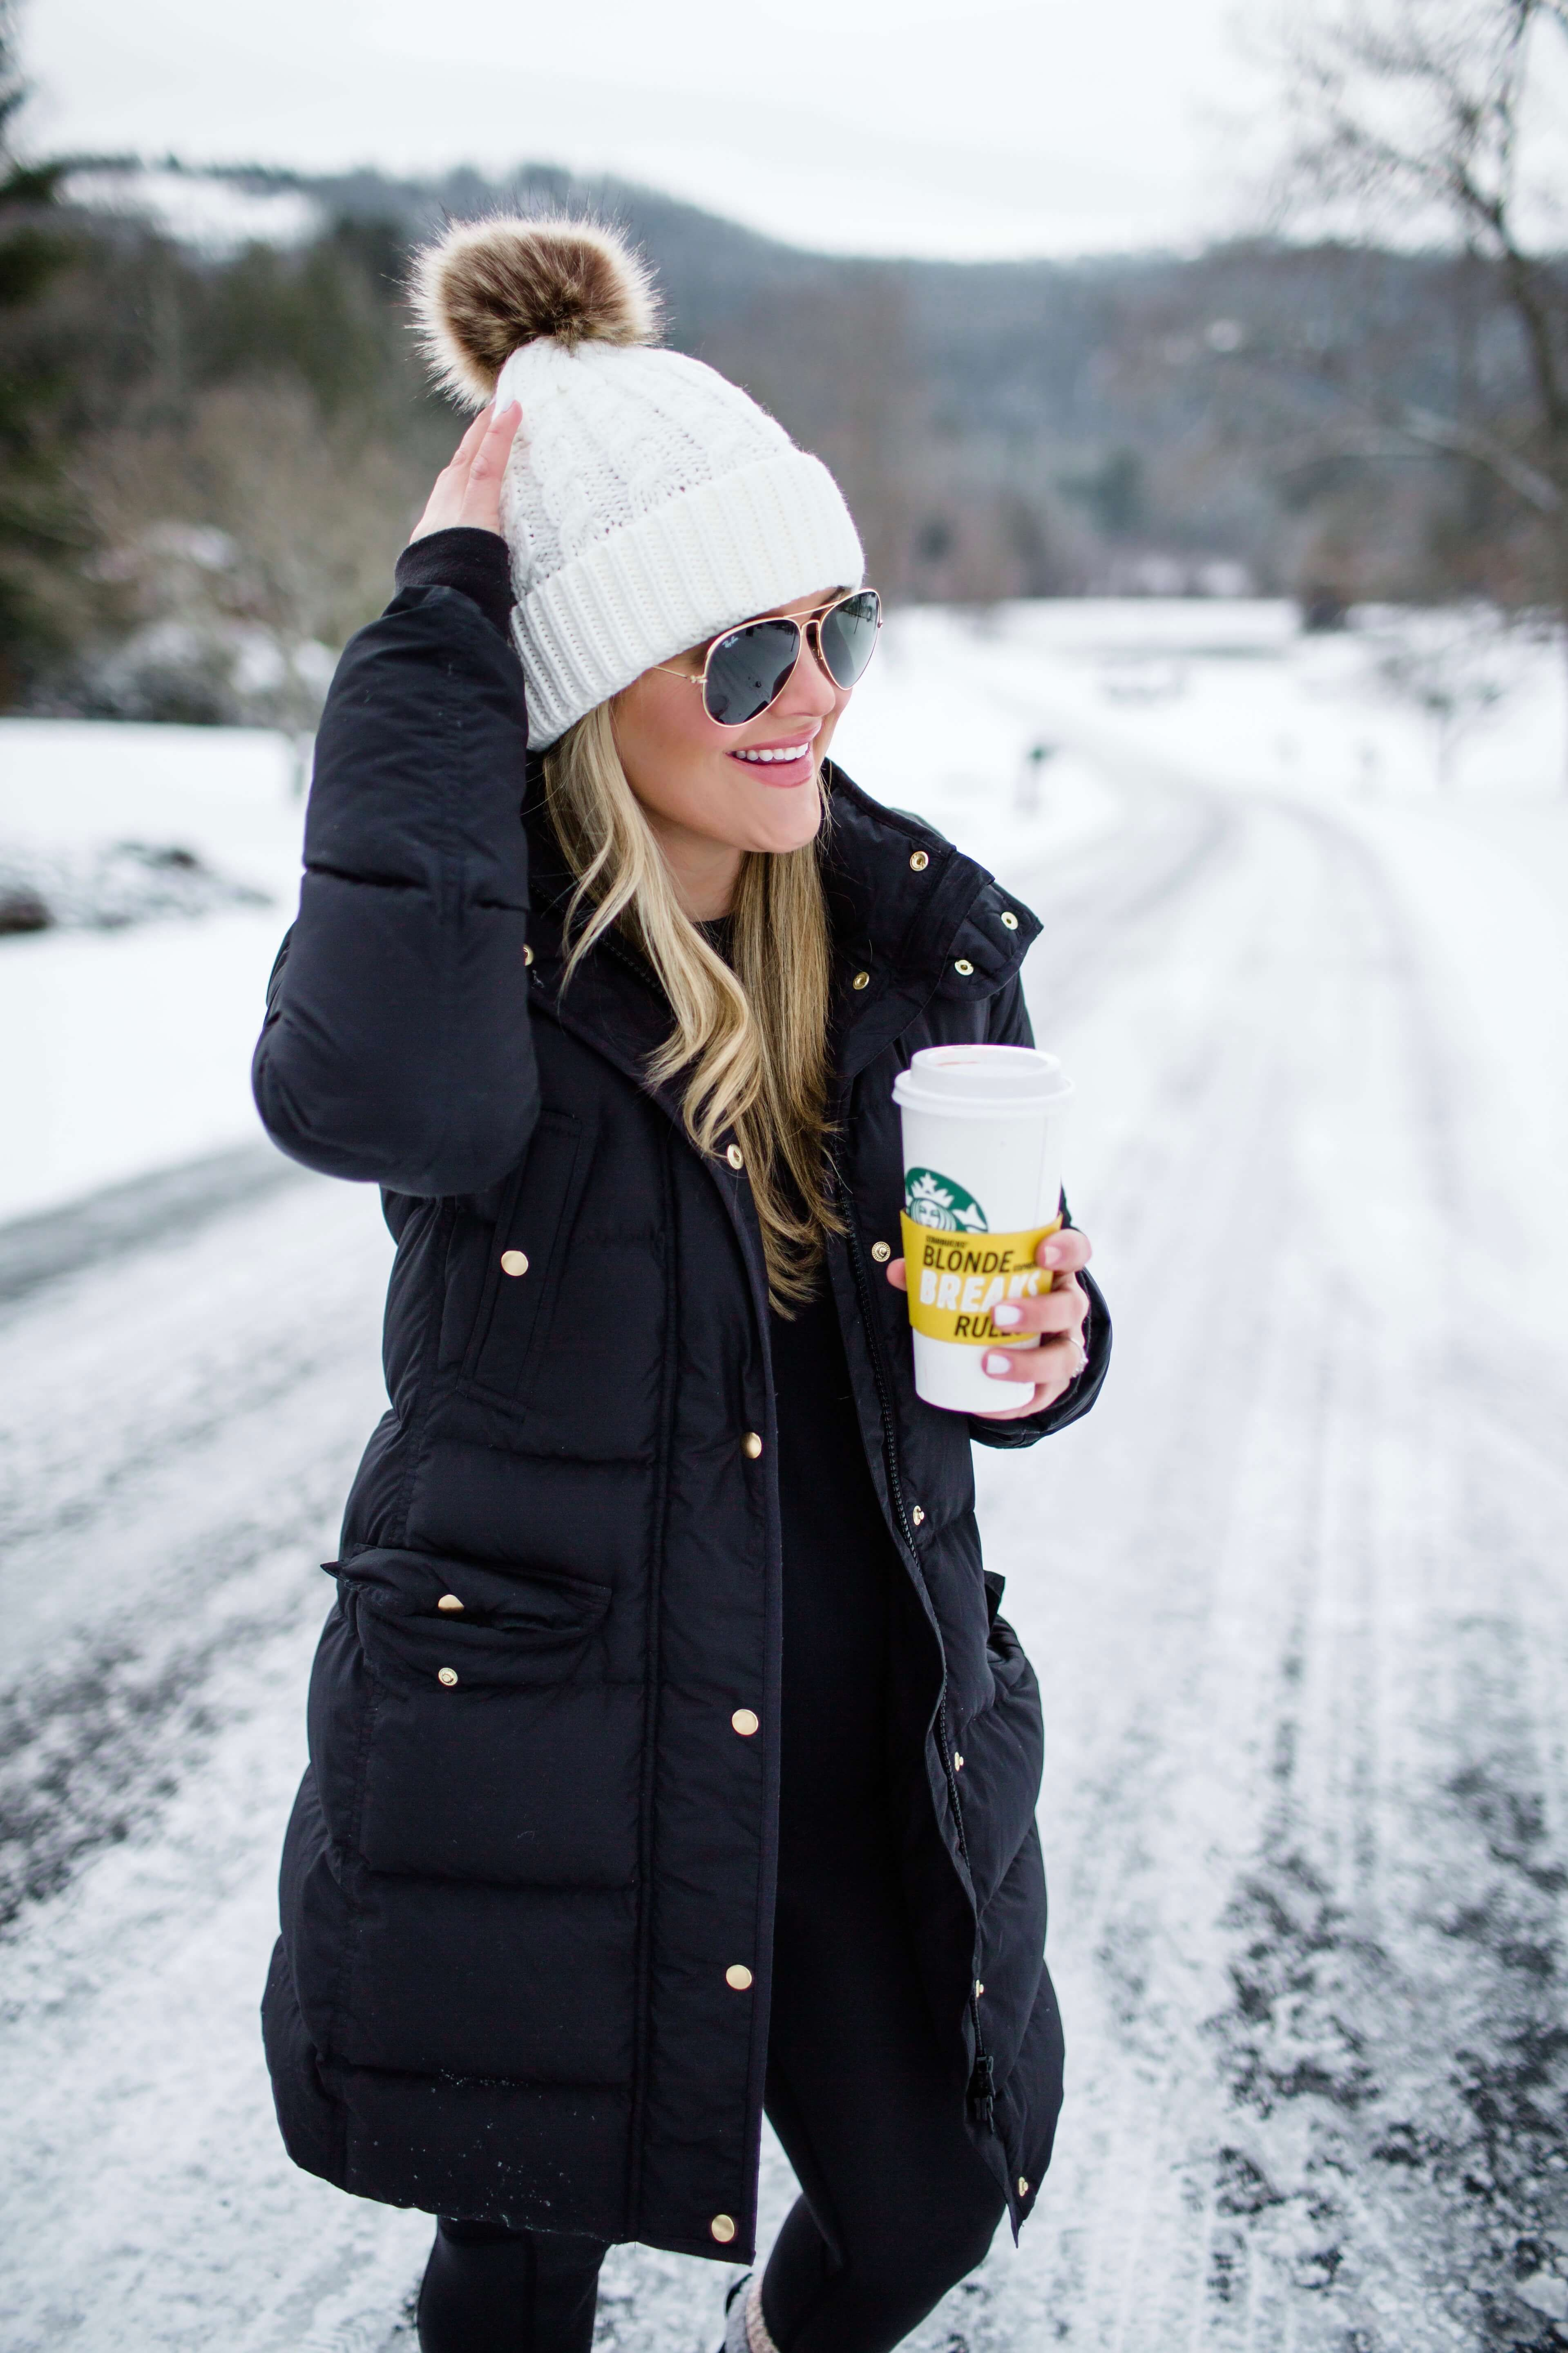 Cristin Cooper | Snow day outfit, Winter fashion outfits